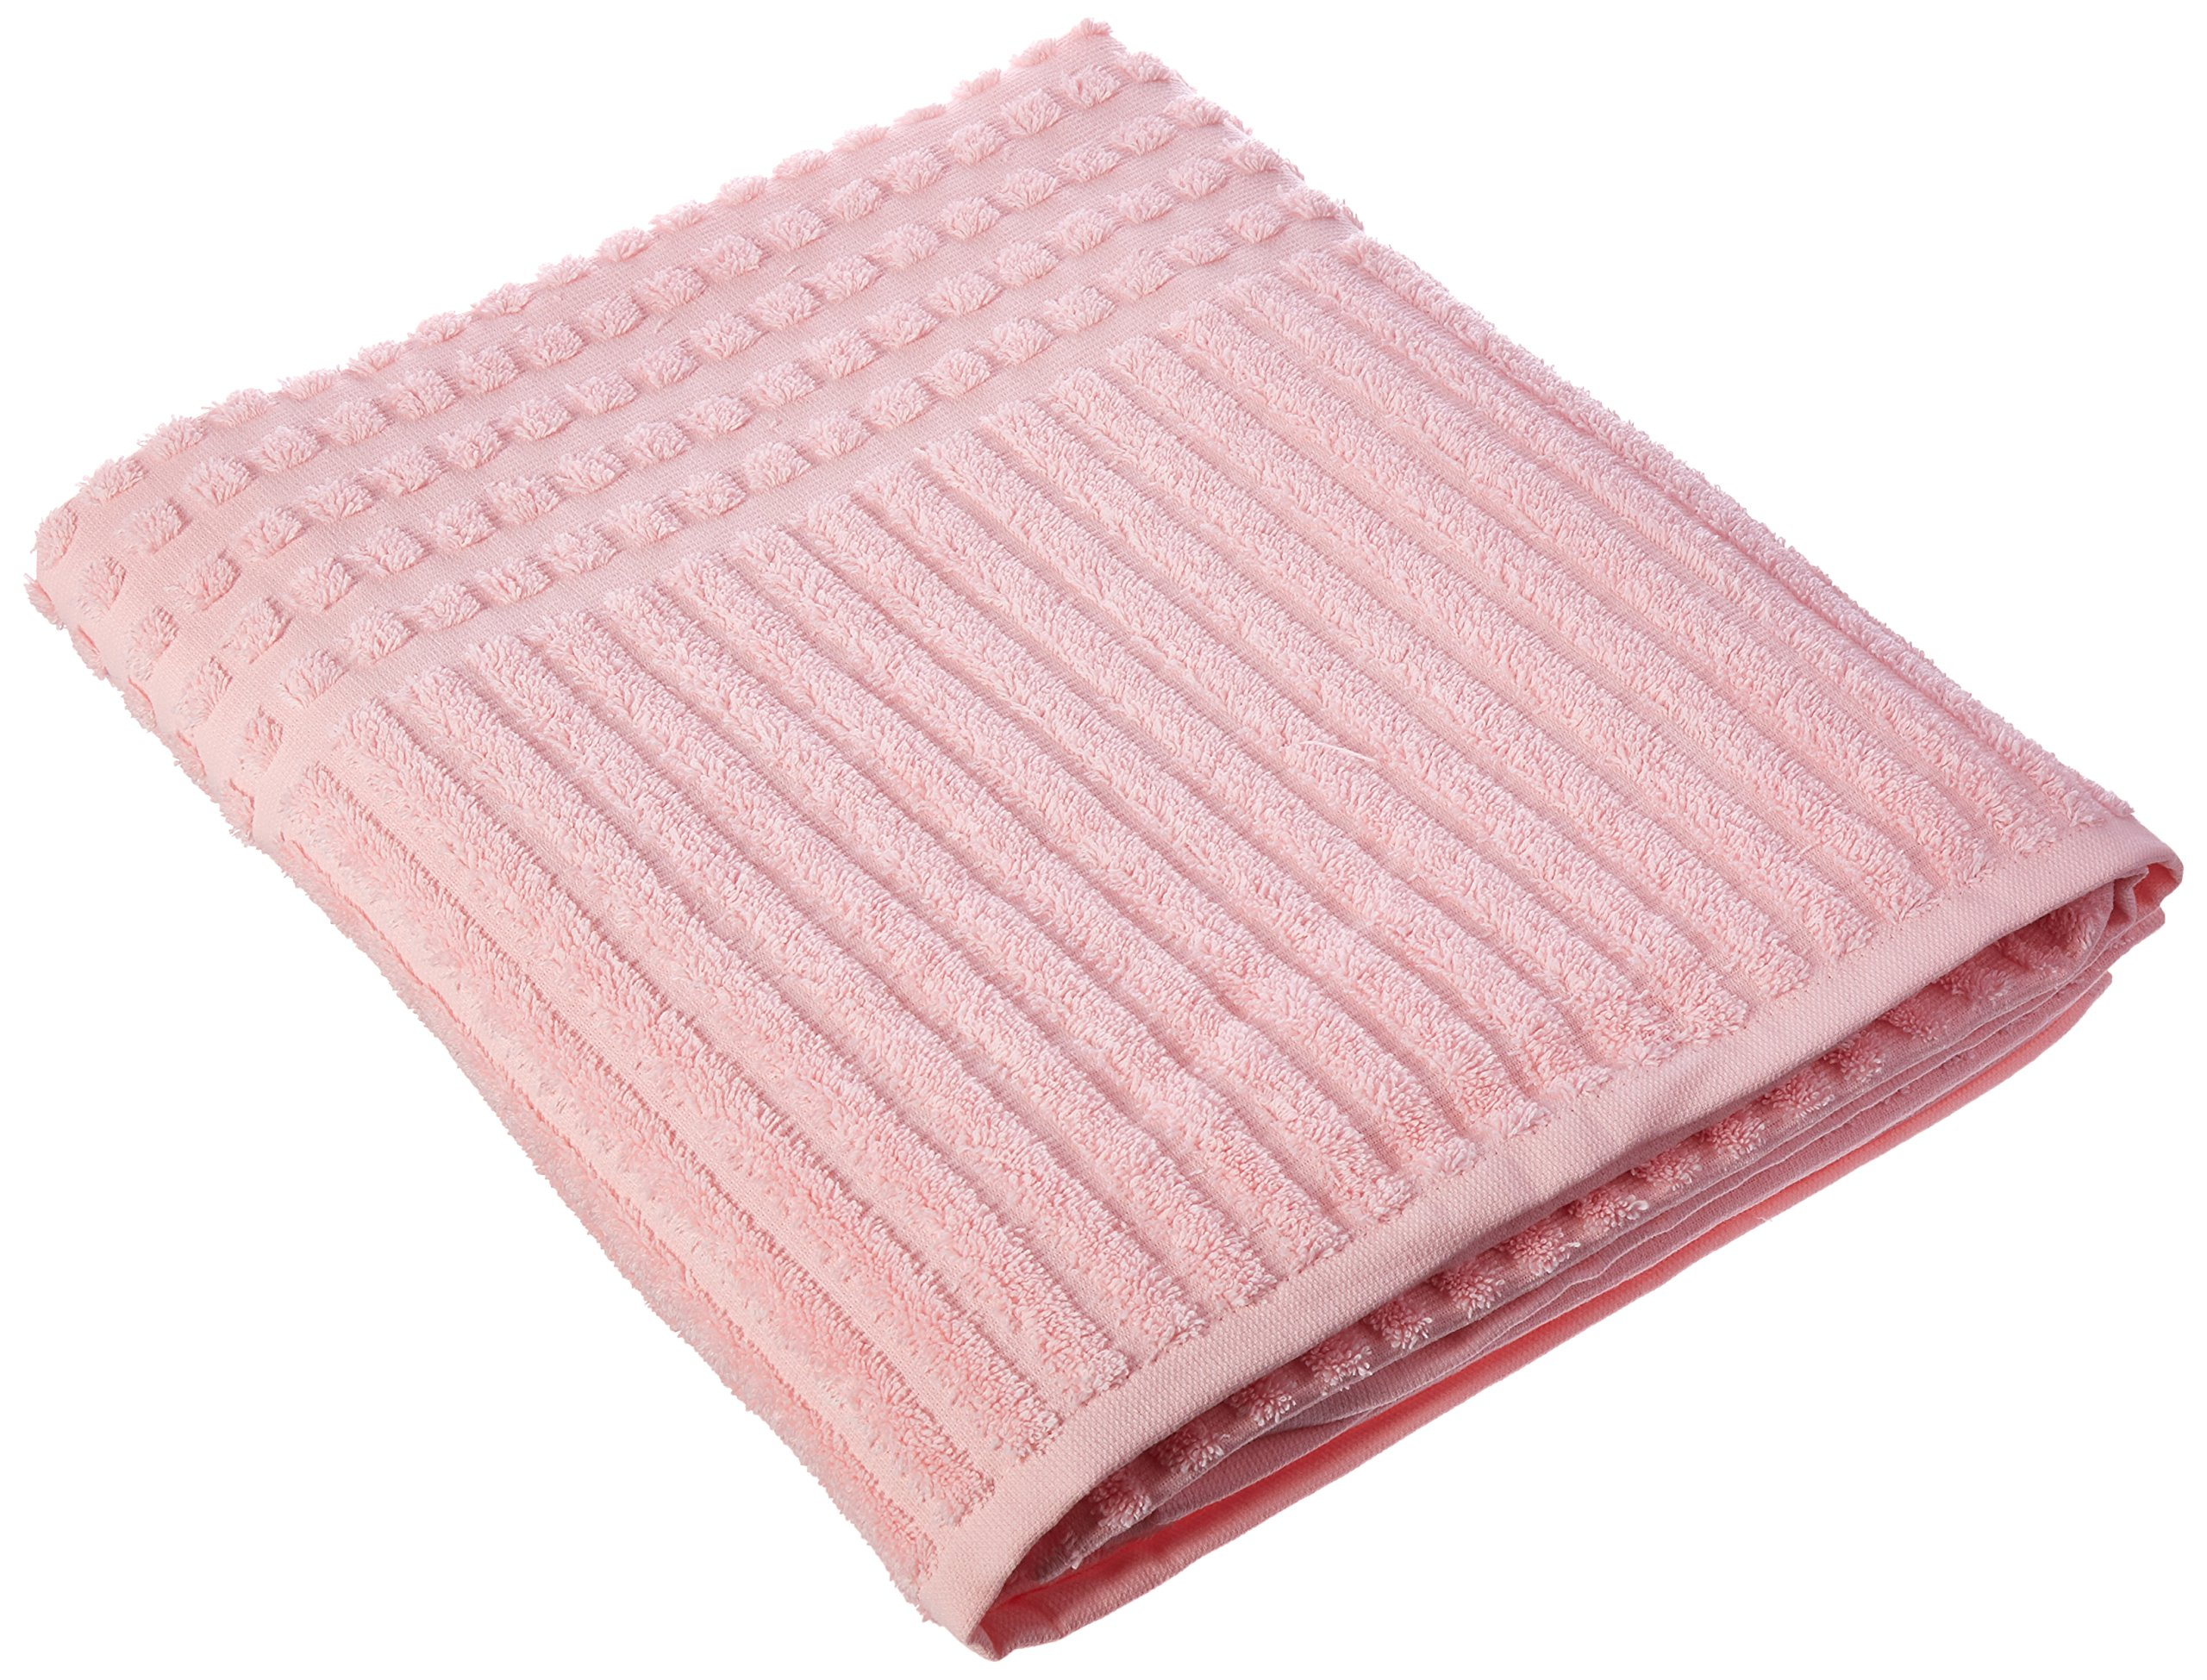 Berrnour Home Piano Collection Turkish Cotton Bath Sheet, (Pink), 39 X 59 Inch